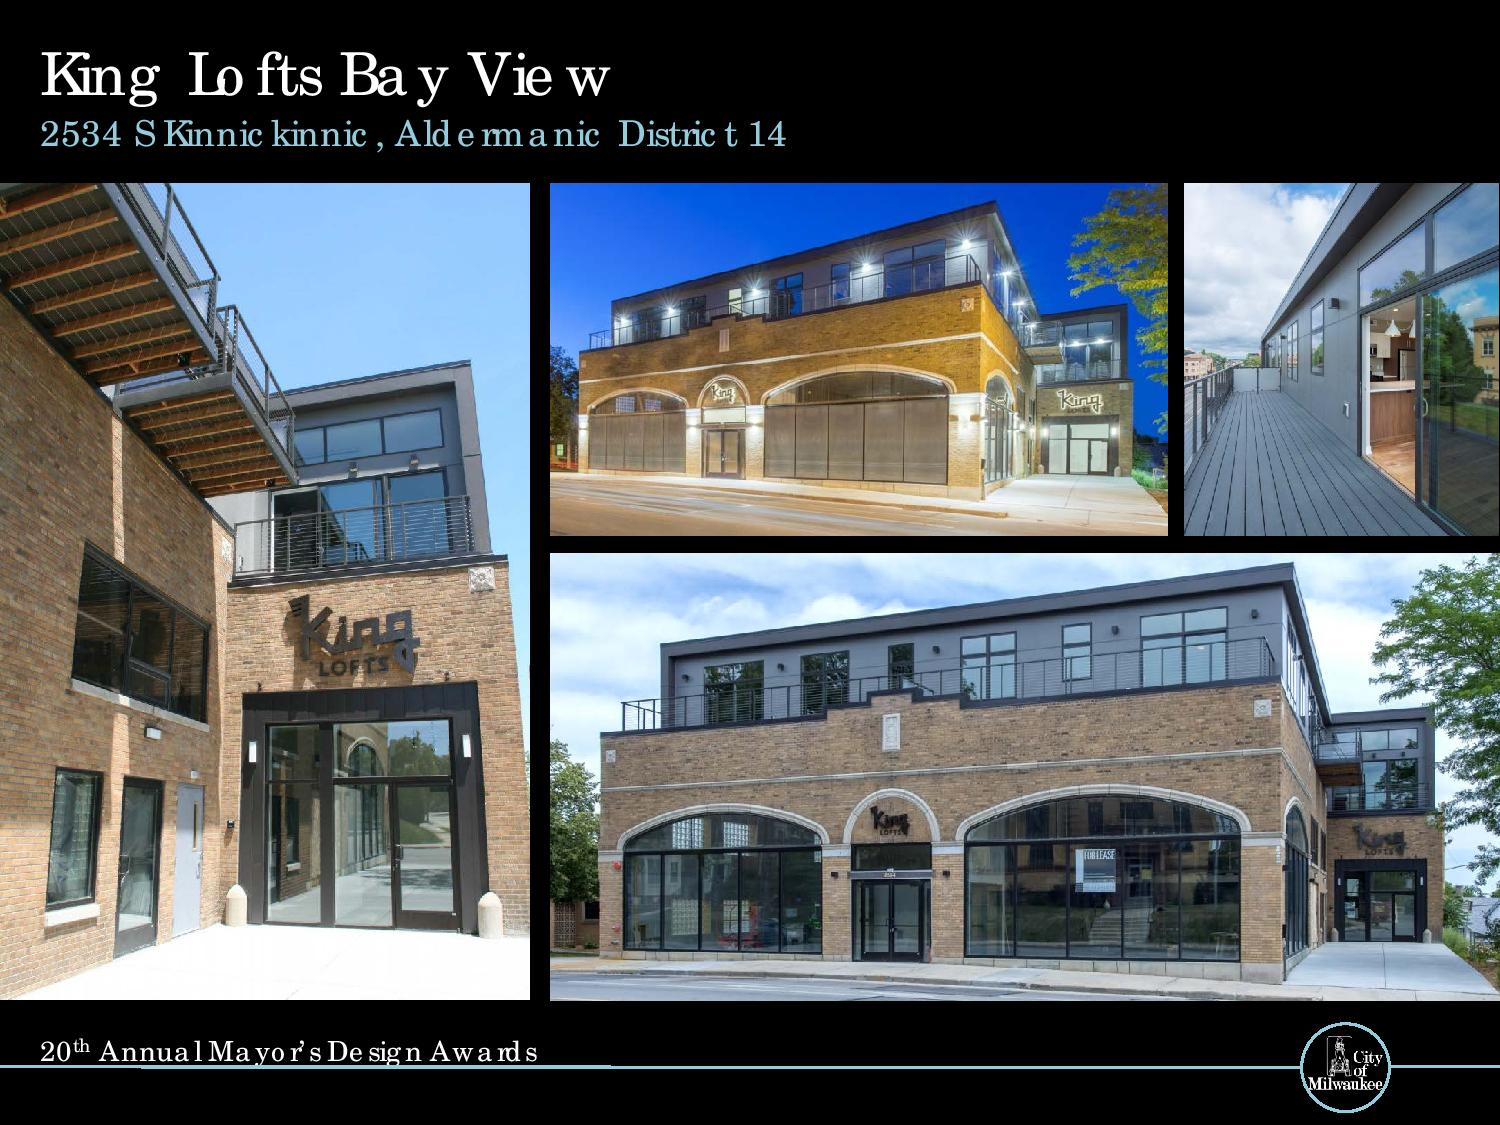 King Lofts Bay View, 2534 S. Kinnickinnic Ave.